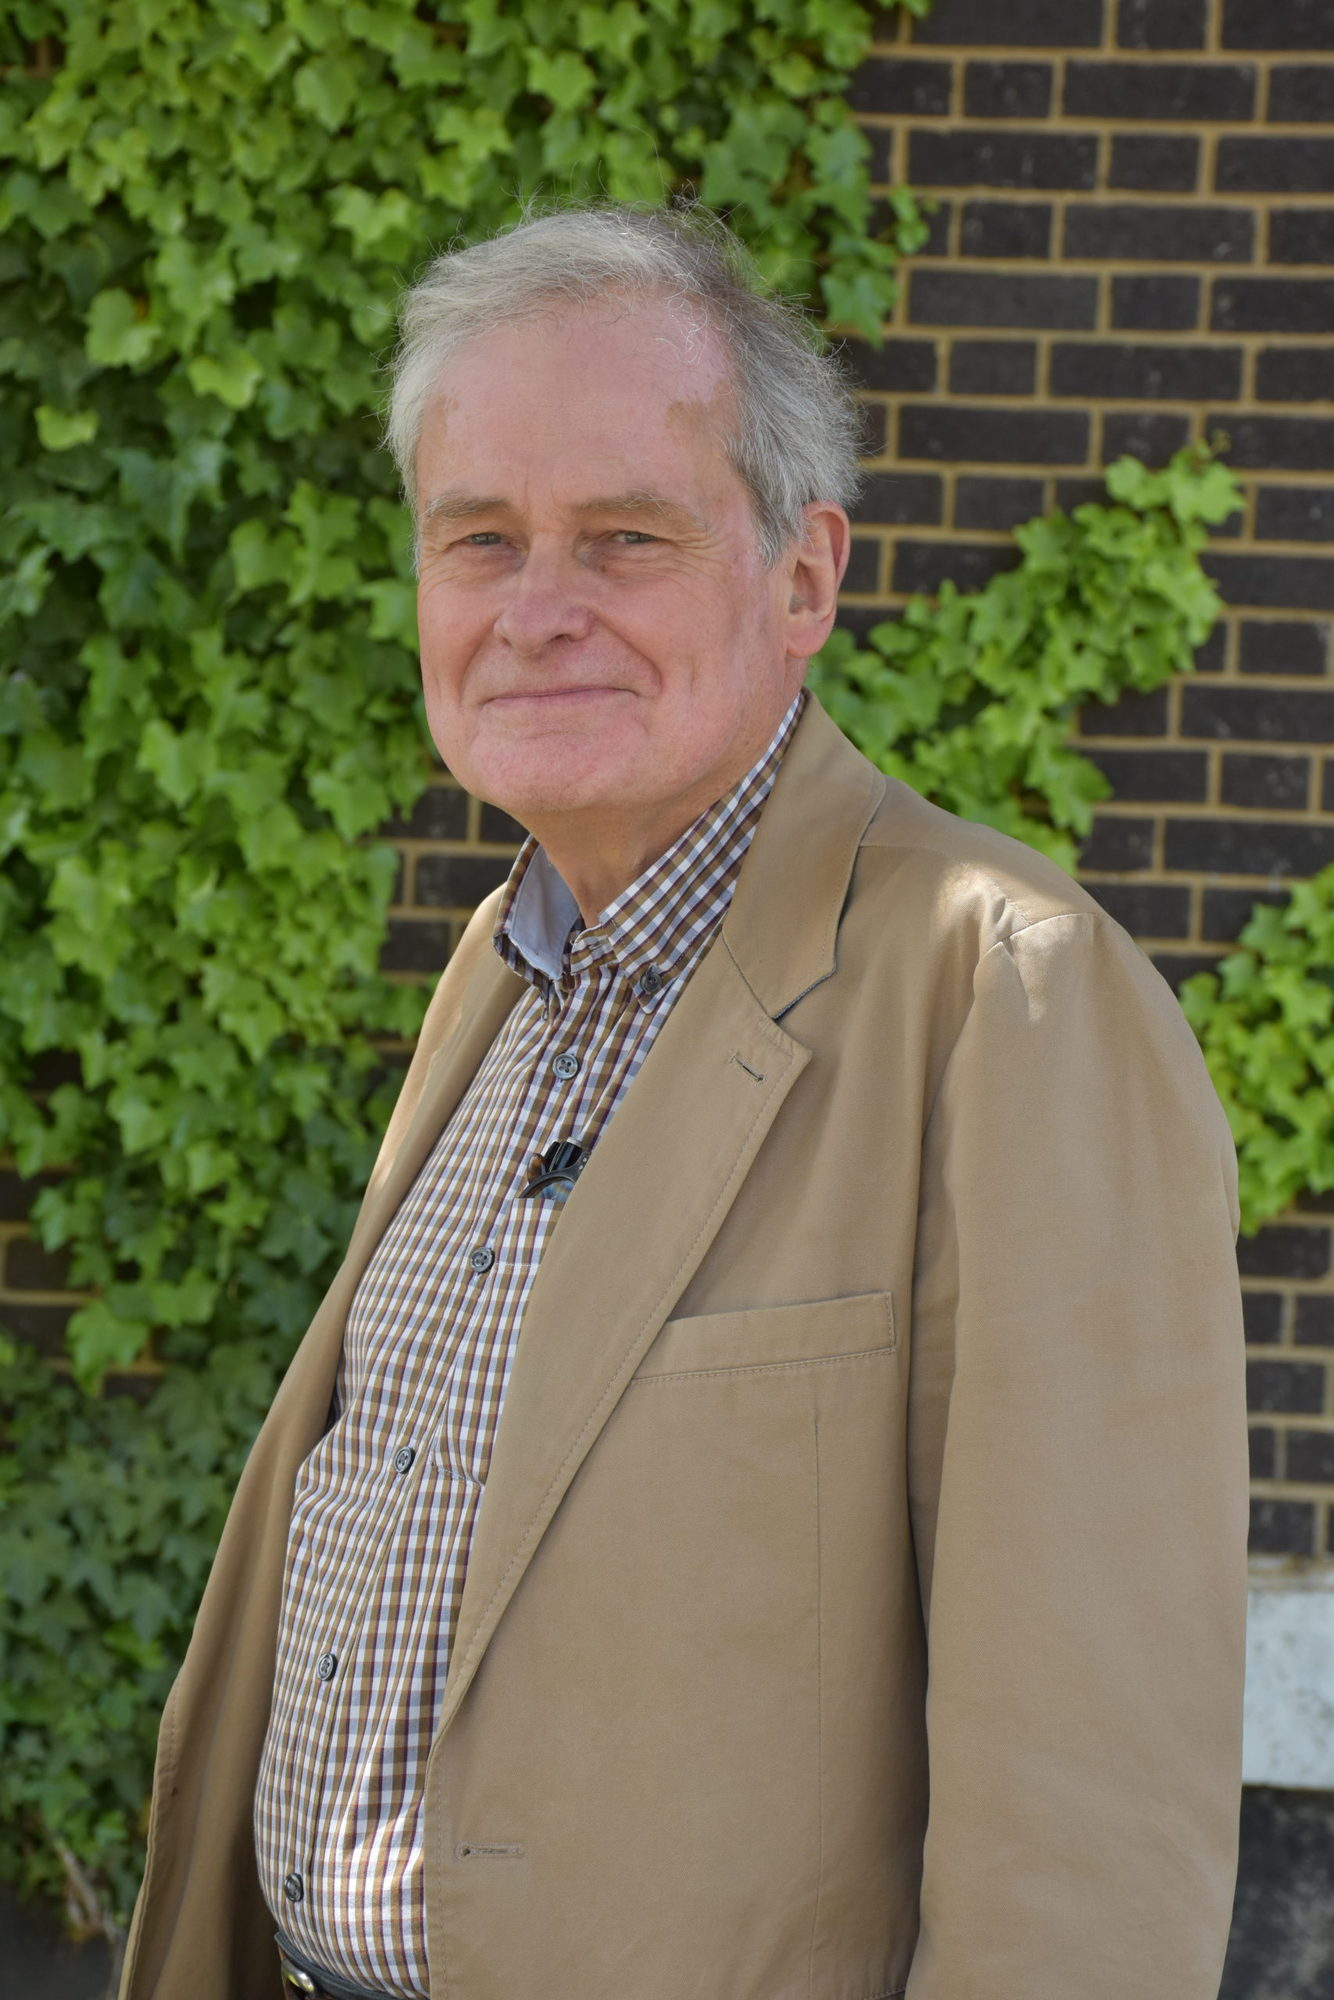 Peter Lavender – Chair of Standards Committee